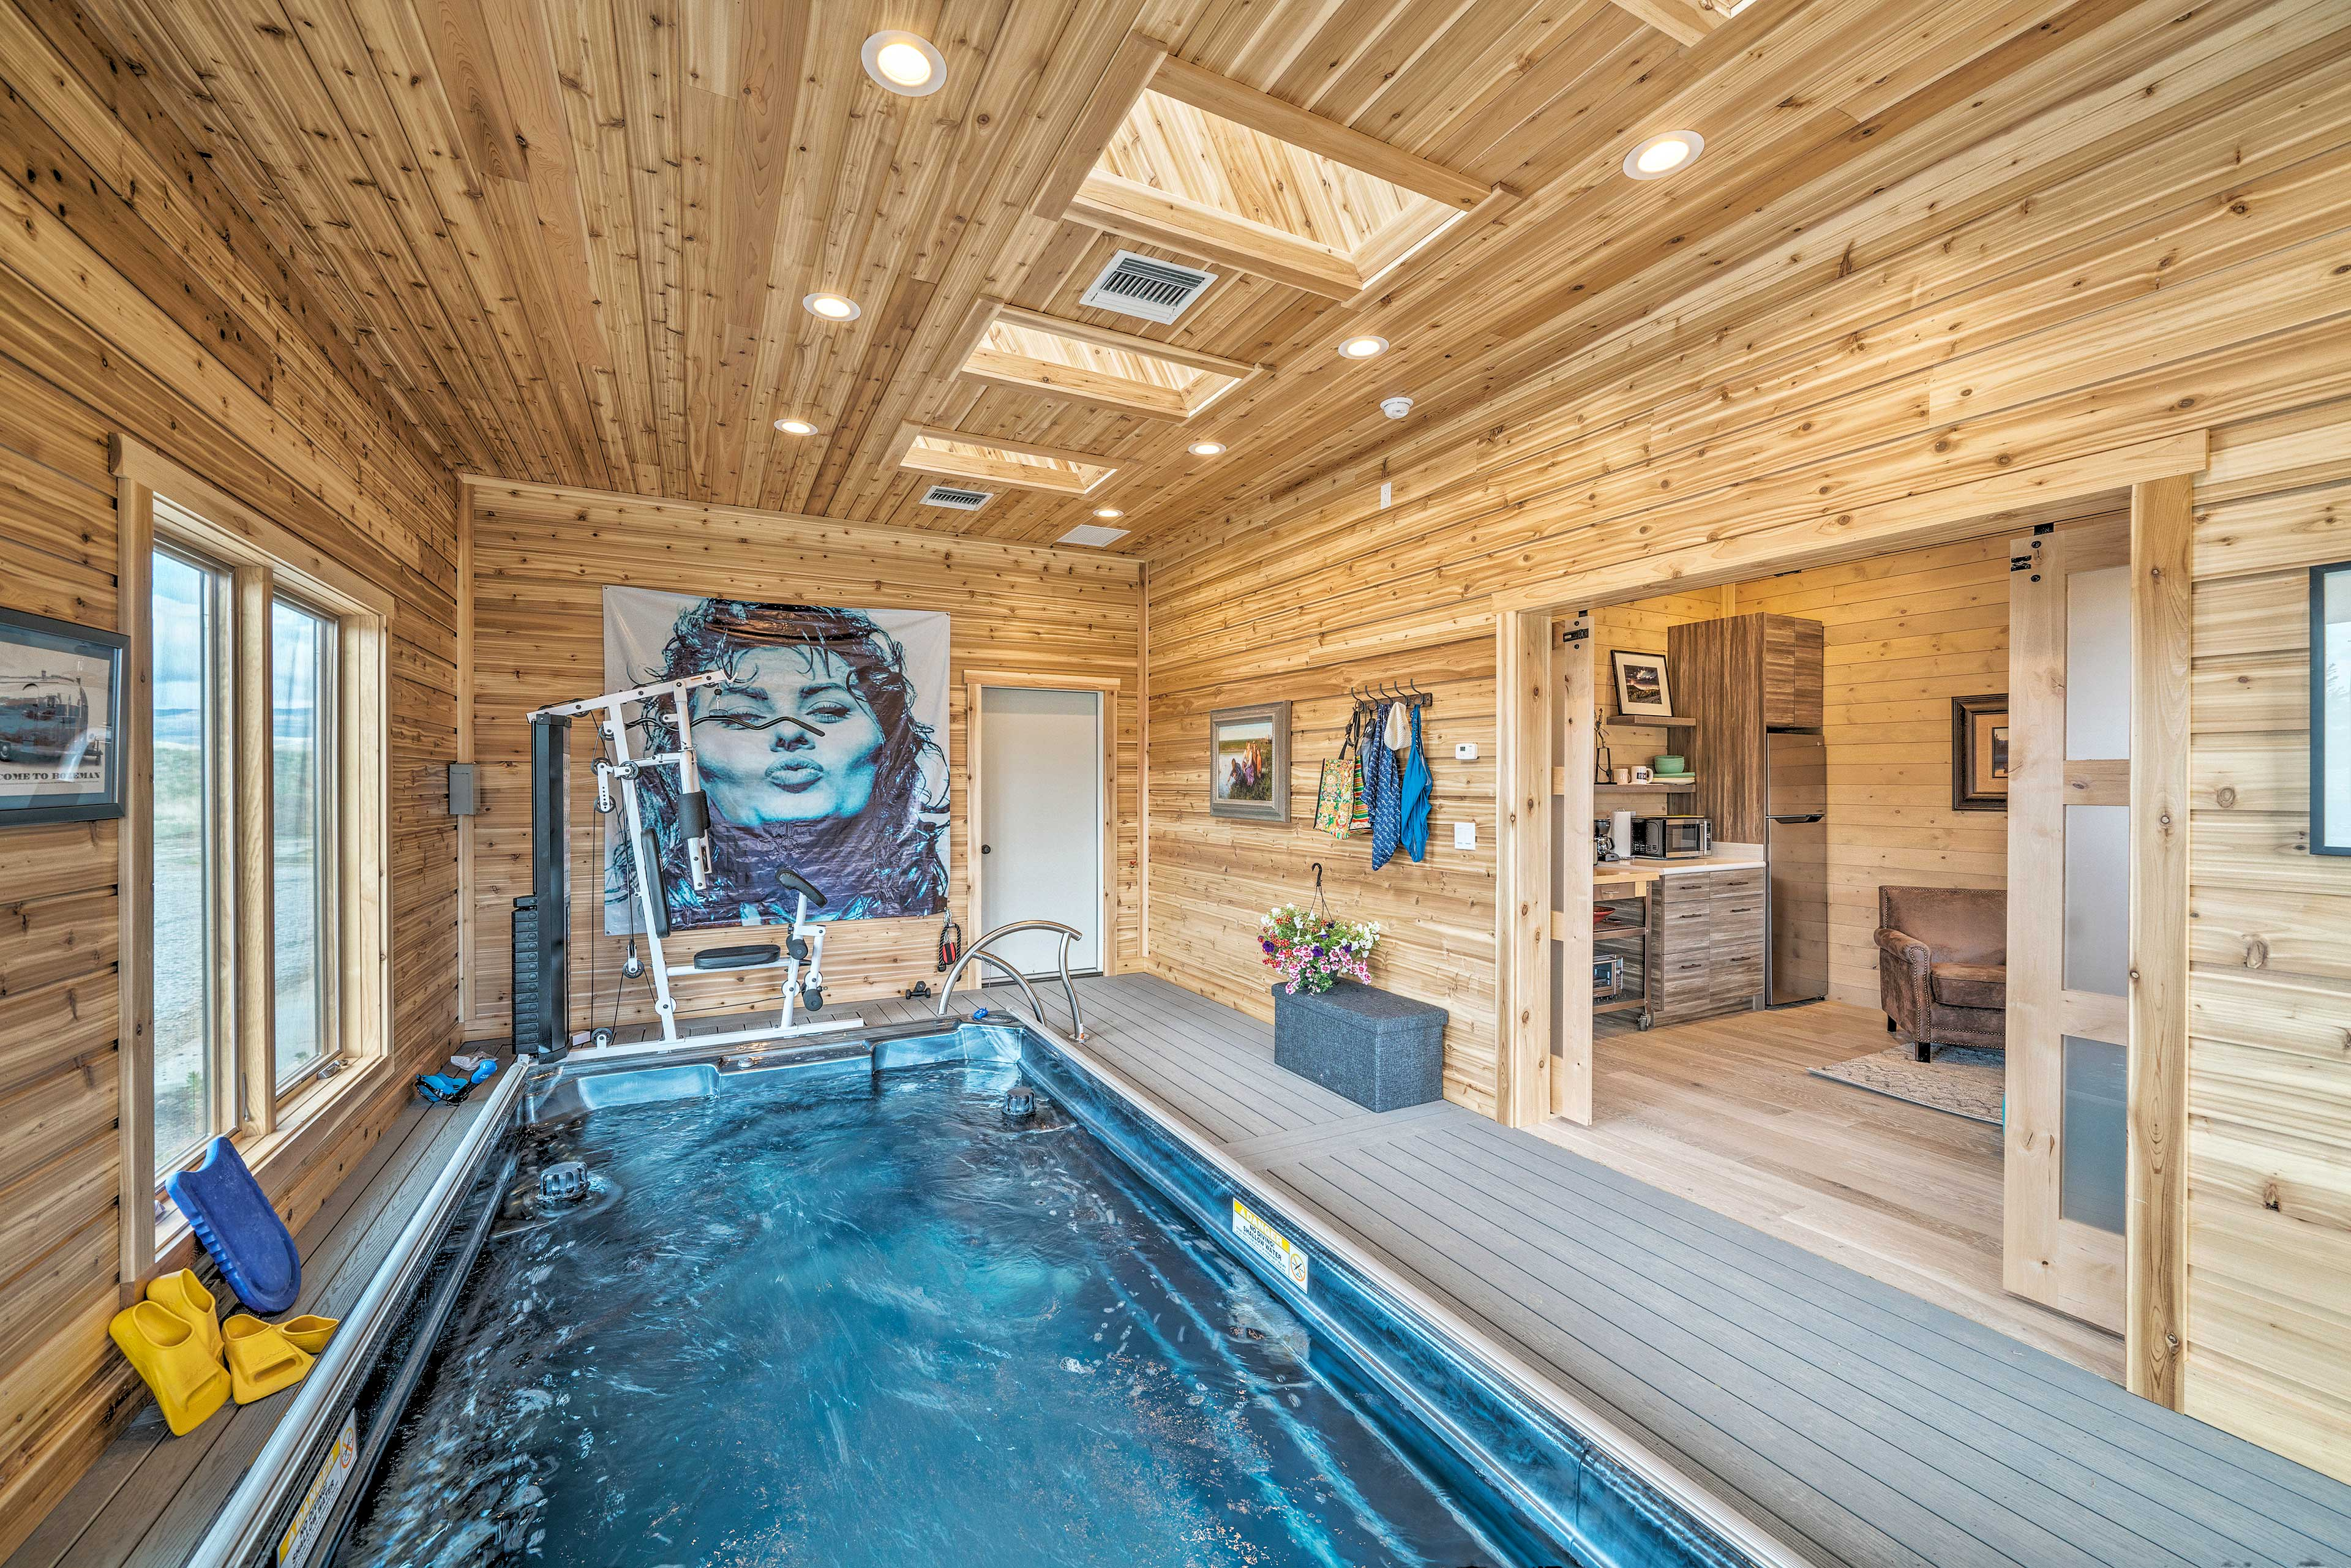 The private pool can be heated for an additional nightly fee (optional).